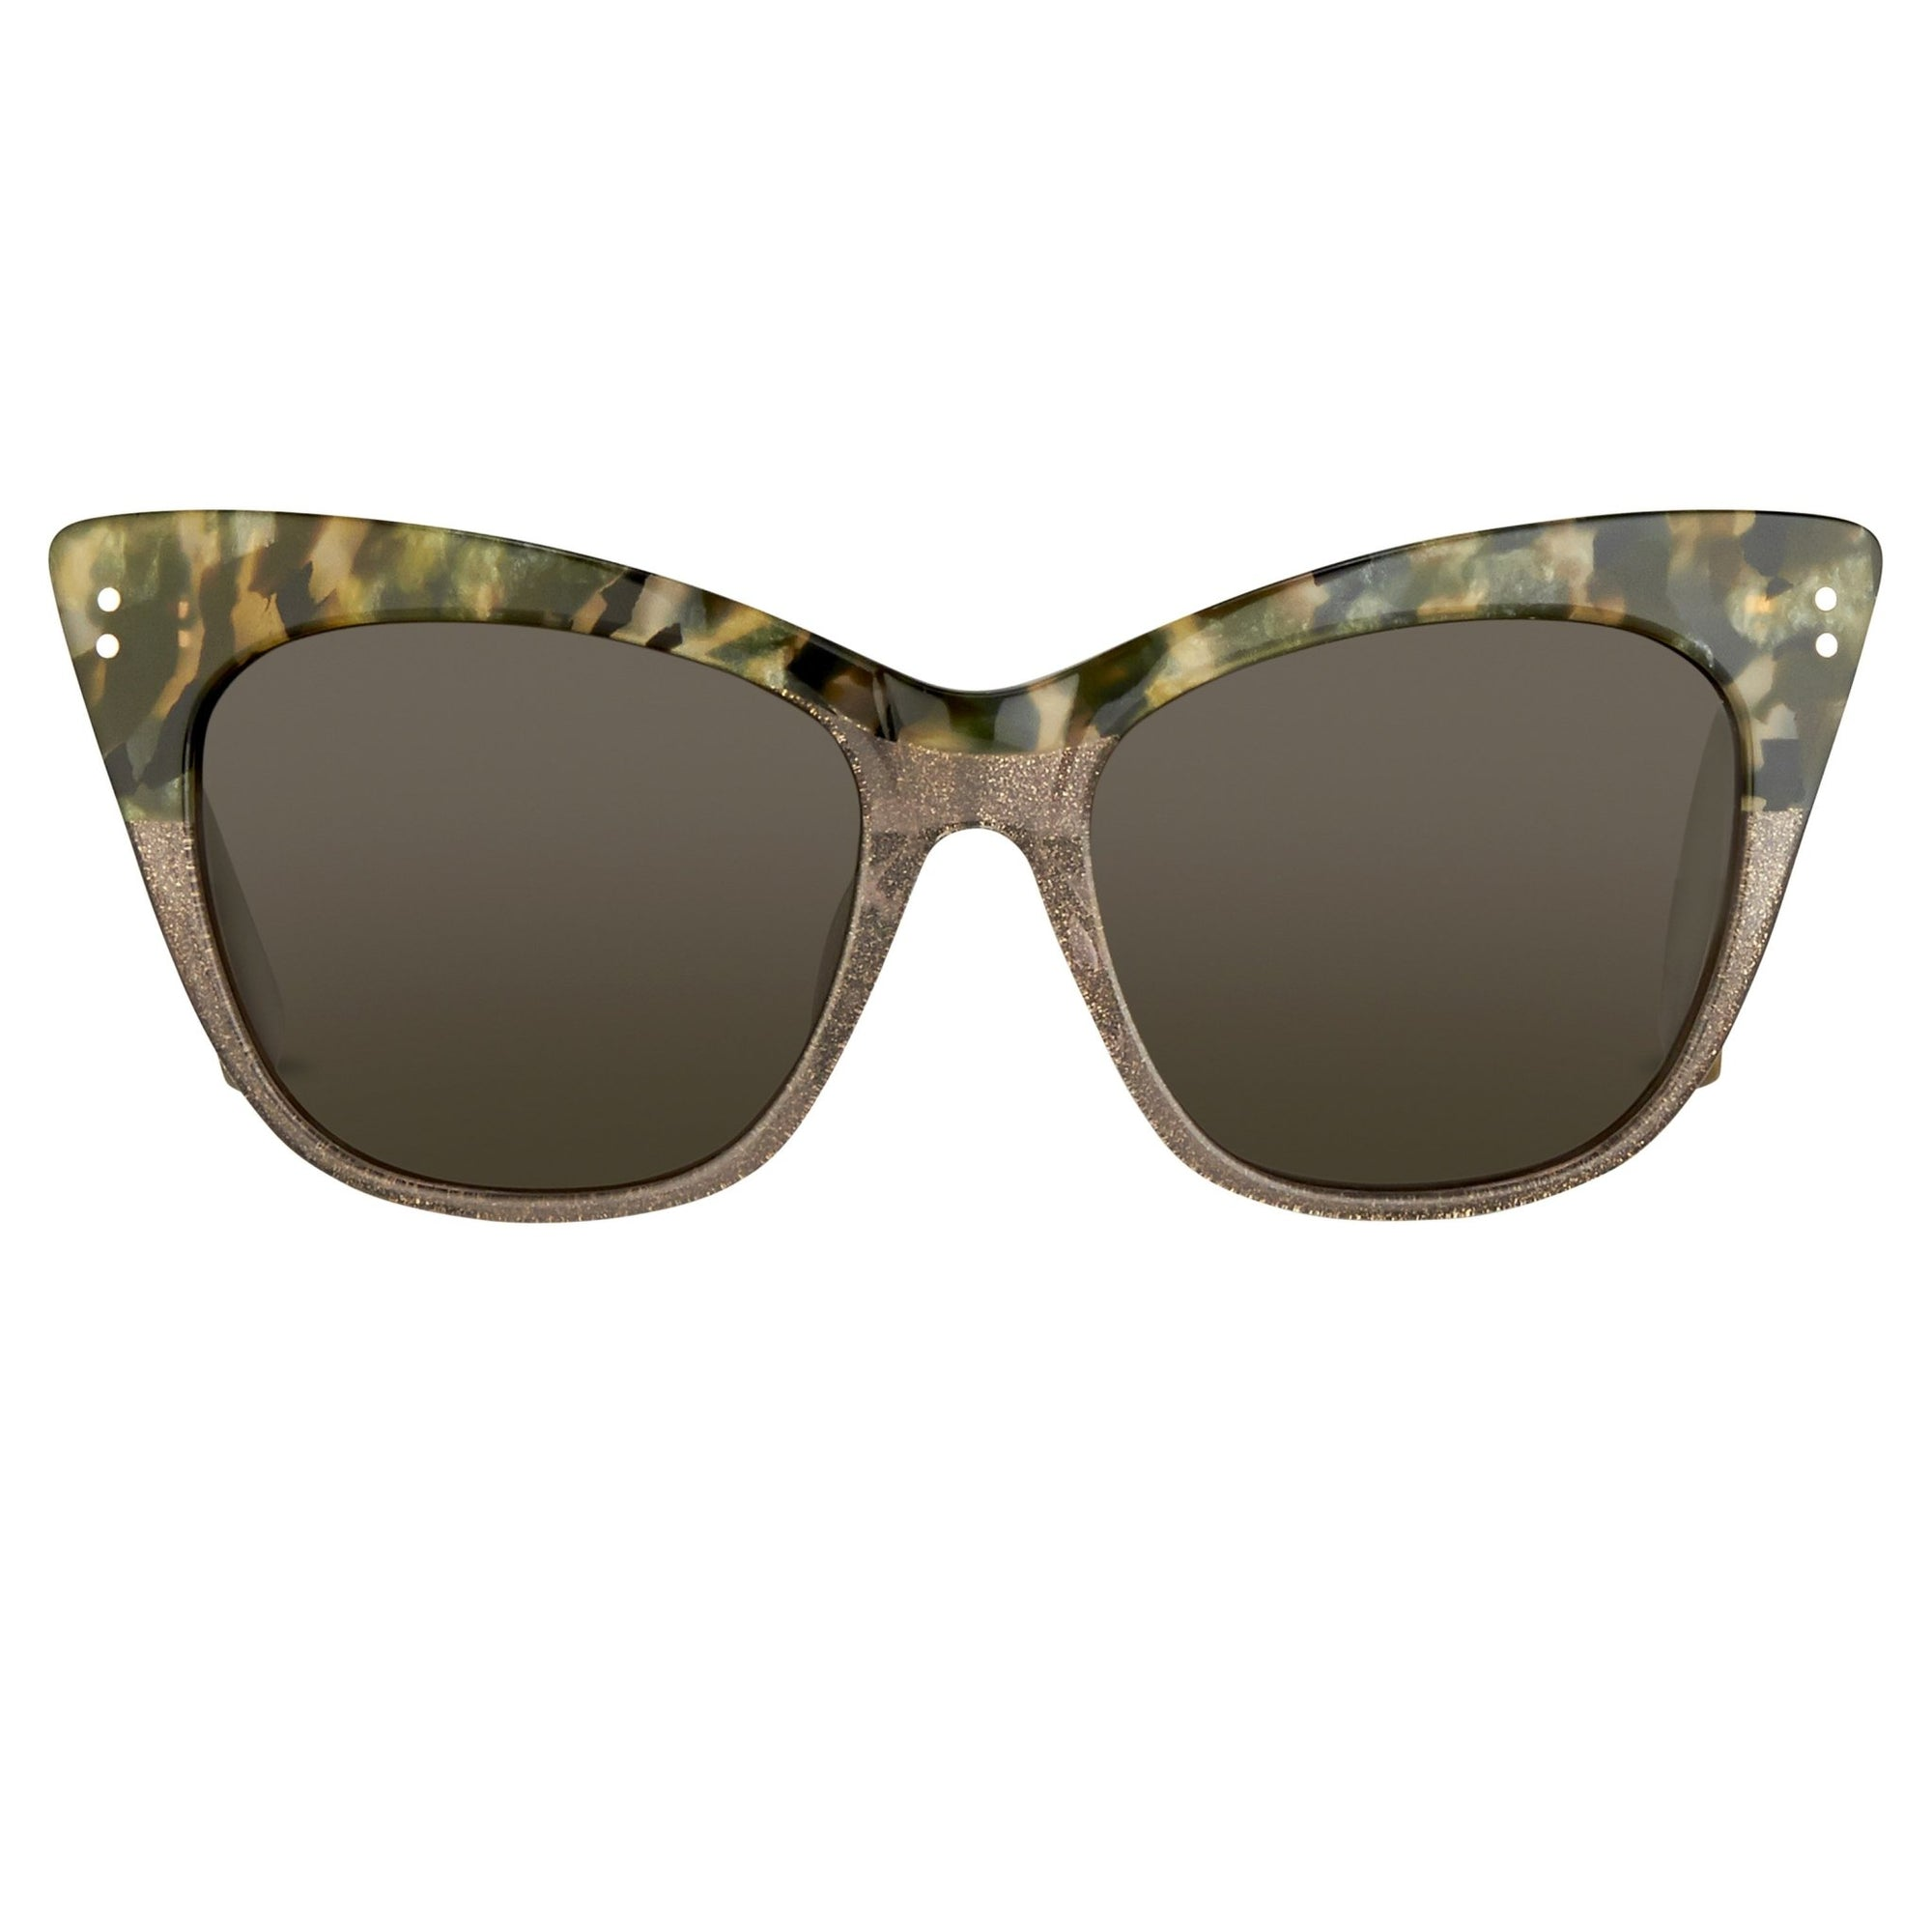 Erdem Women Sunglasses Cat Eye Marble Grey Glitter Silver with Grey Lenses Category 3 EDM22C3SUN - Watches & Crystals